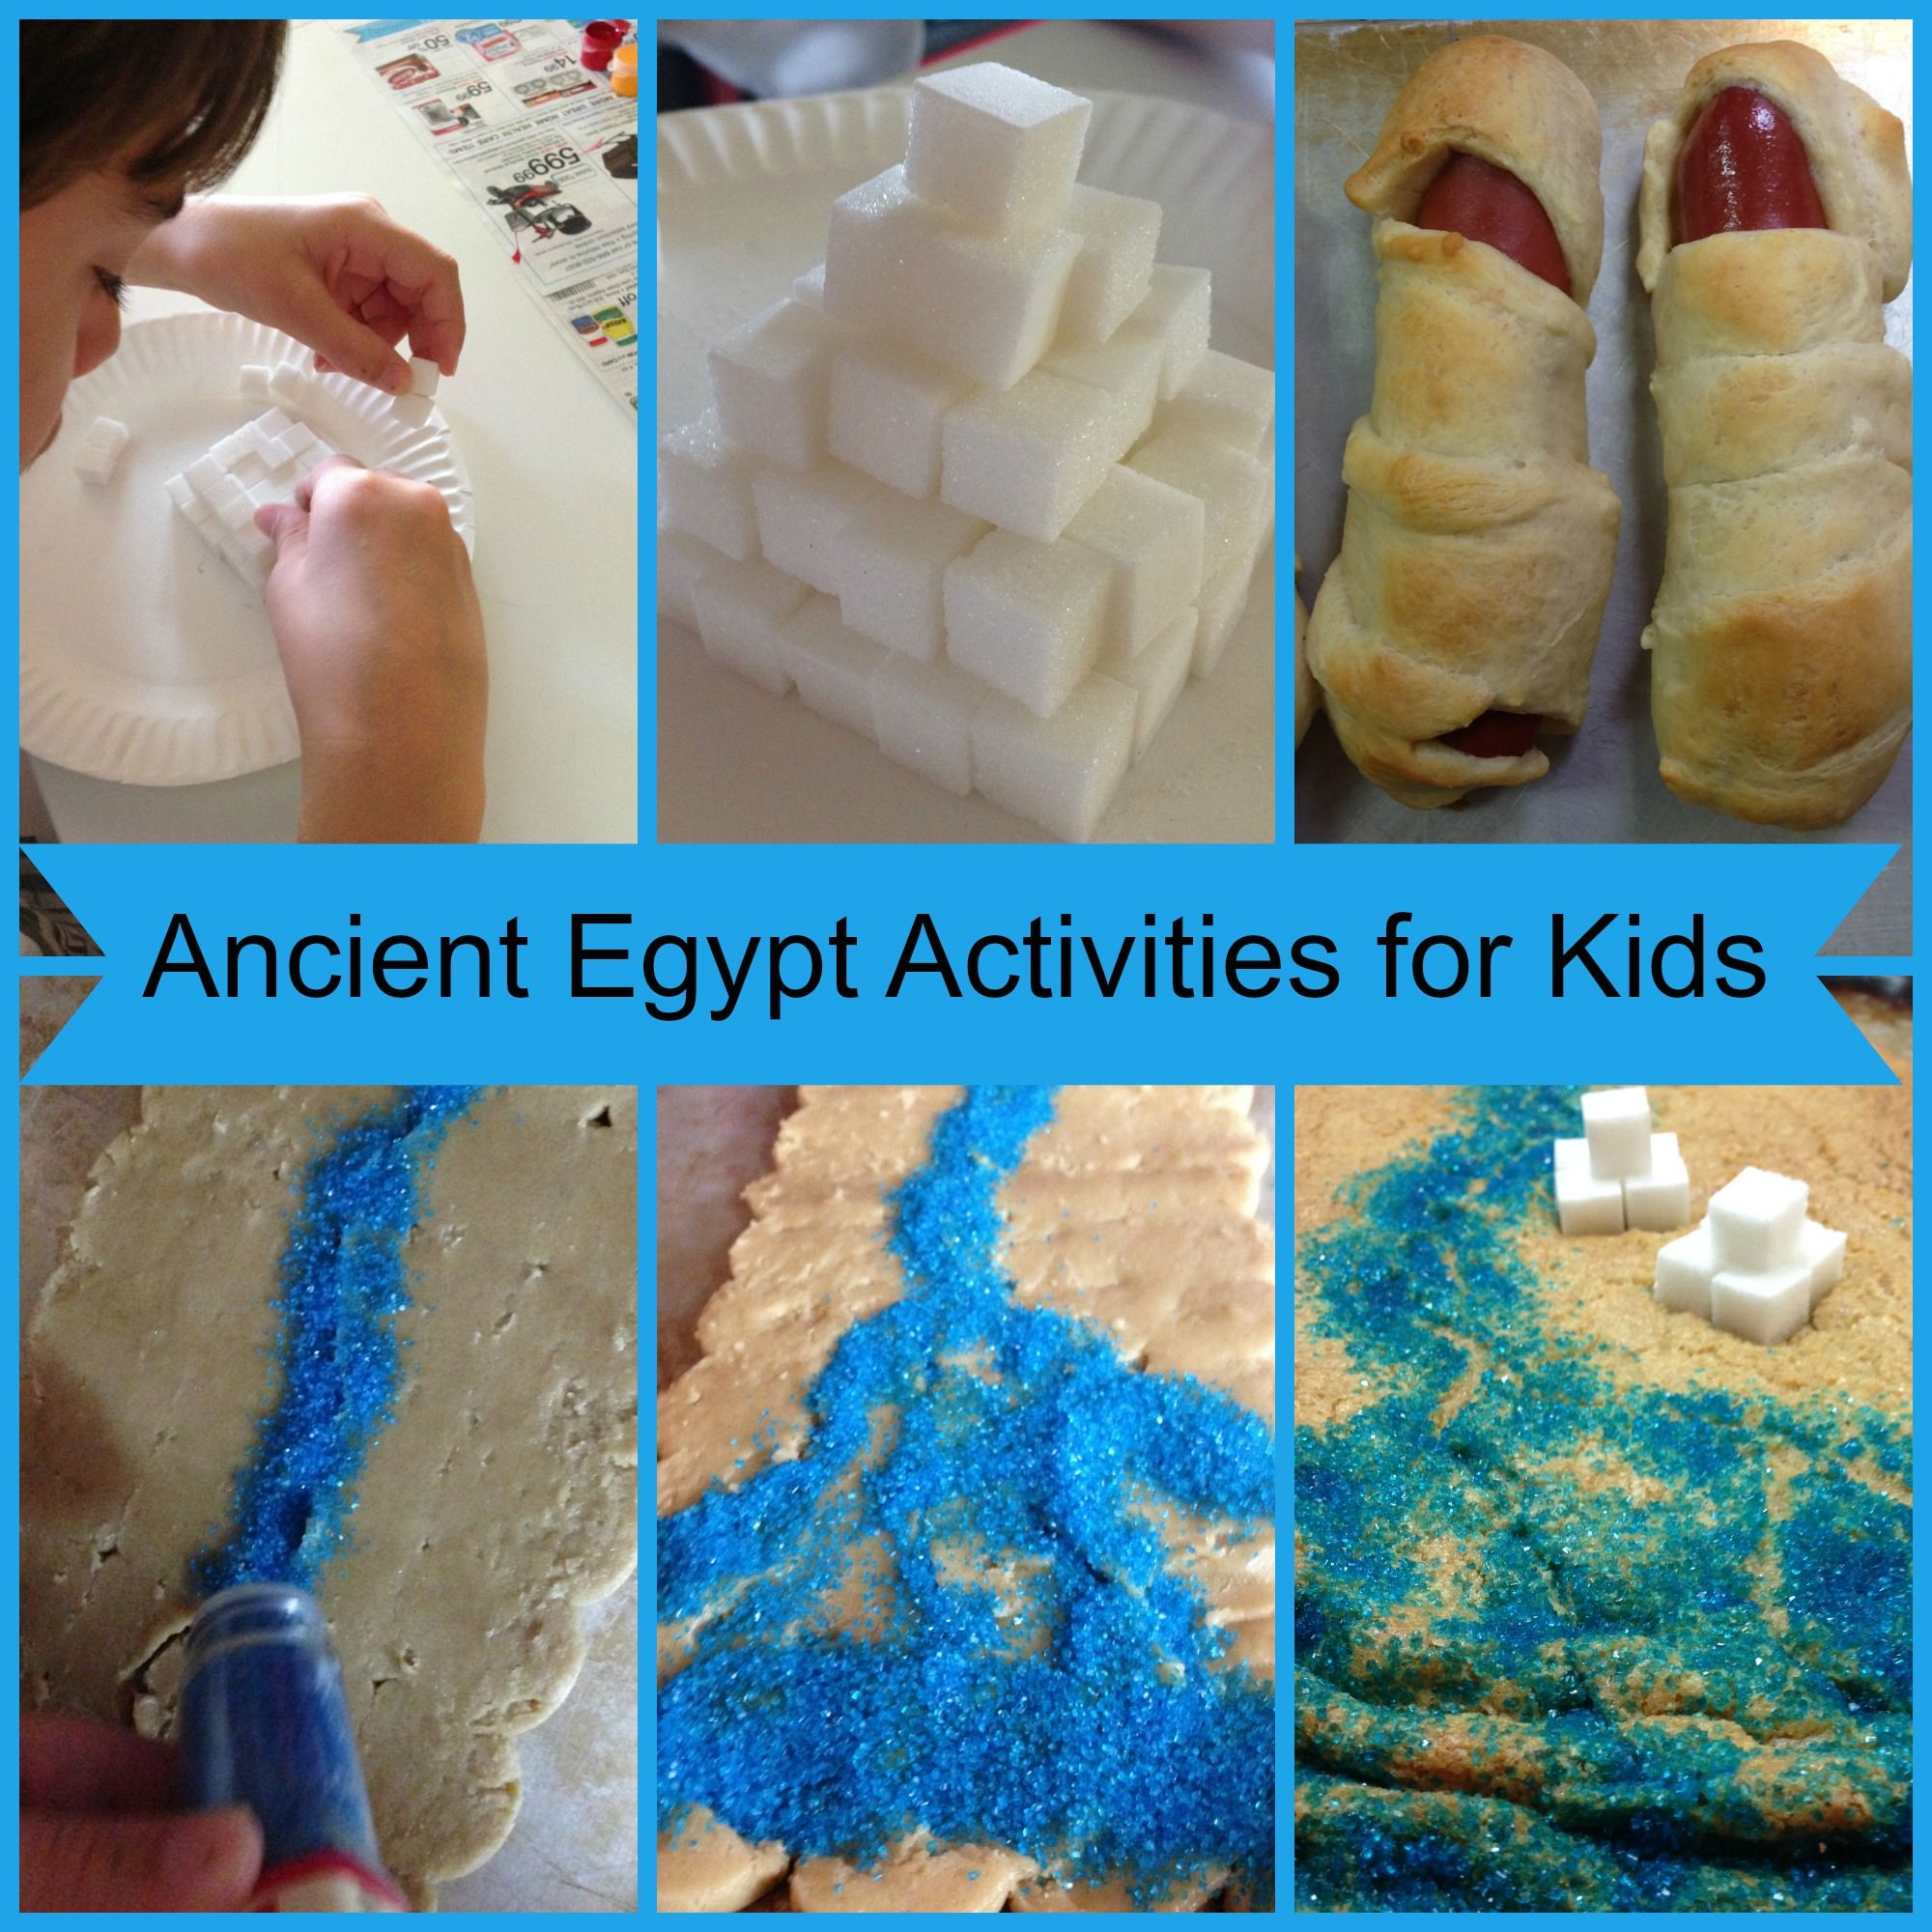 Ancient Egypt Activities For Kids From Layered Soul